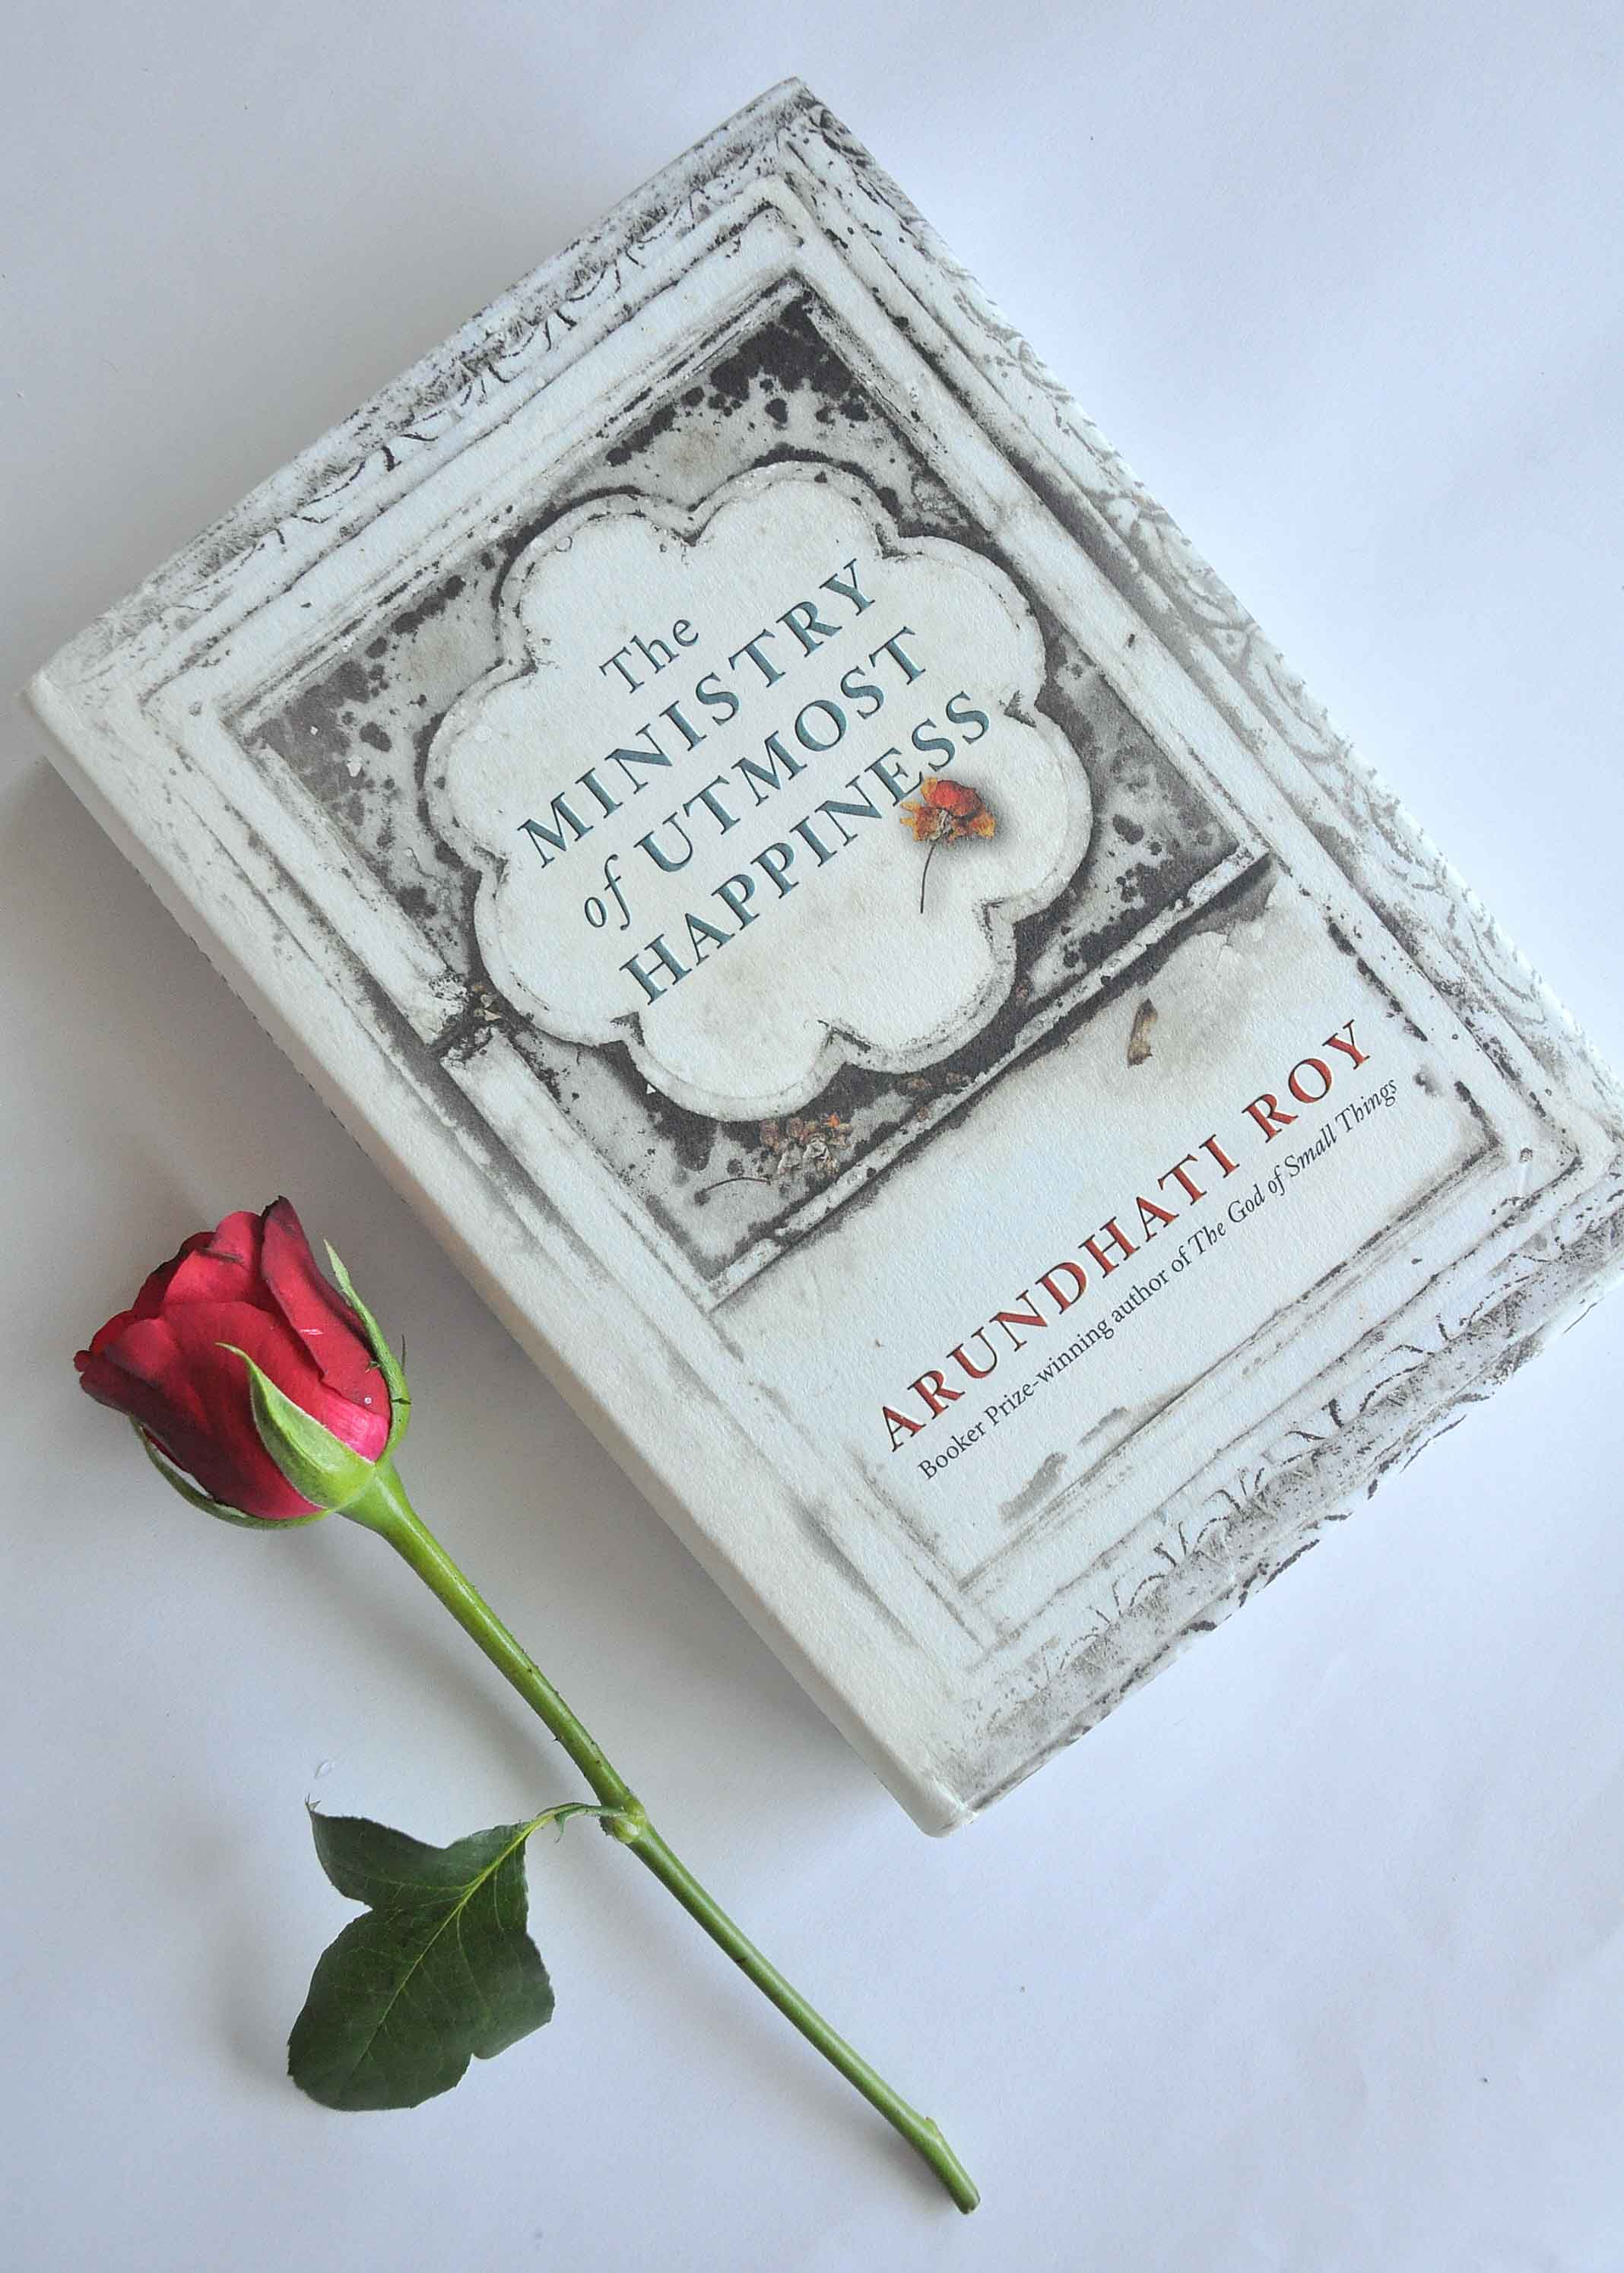 the ministry of utmost happiness summary pdf